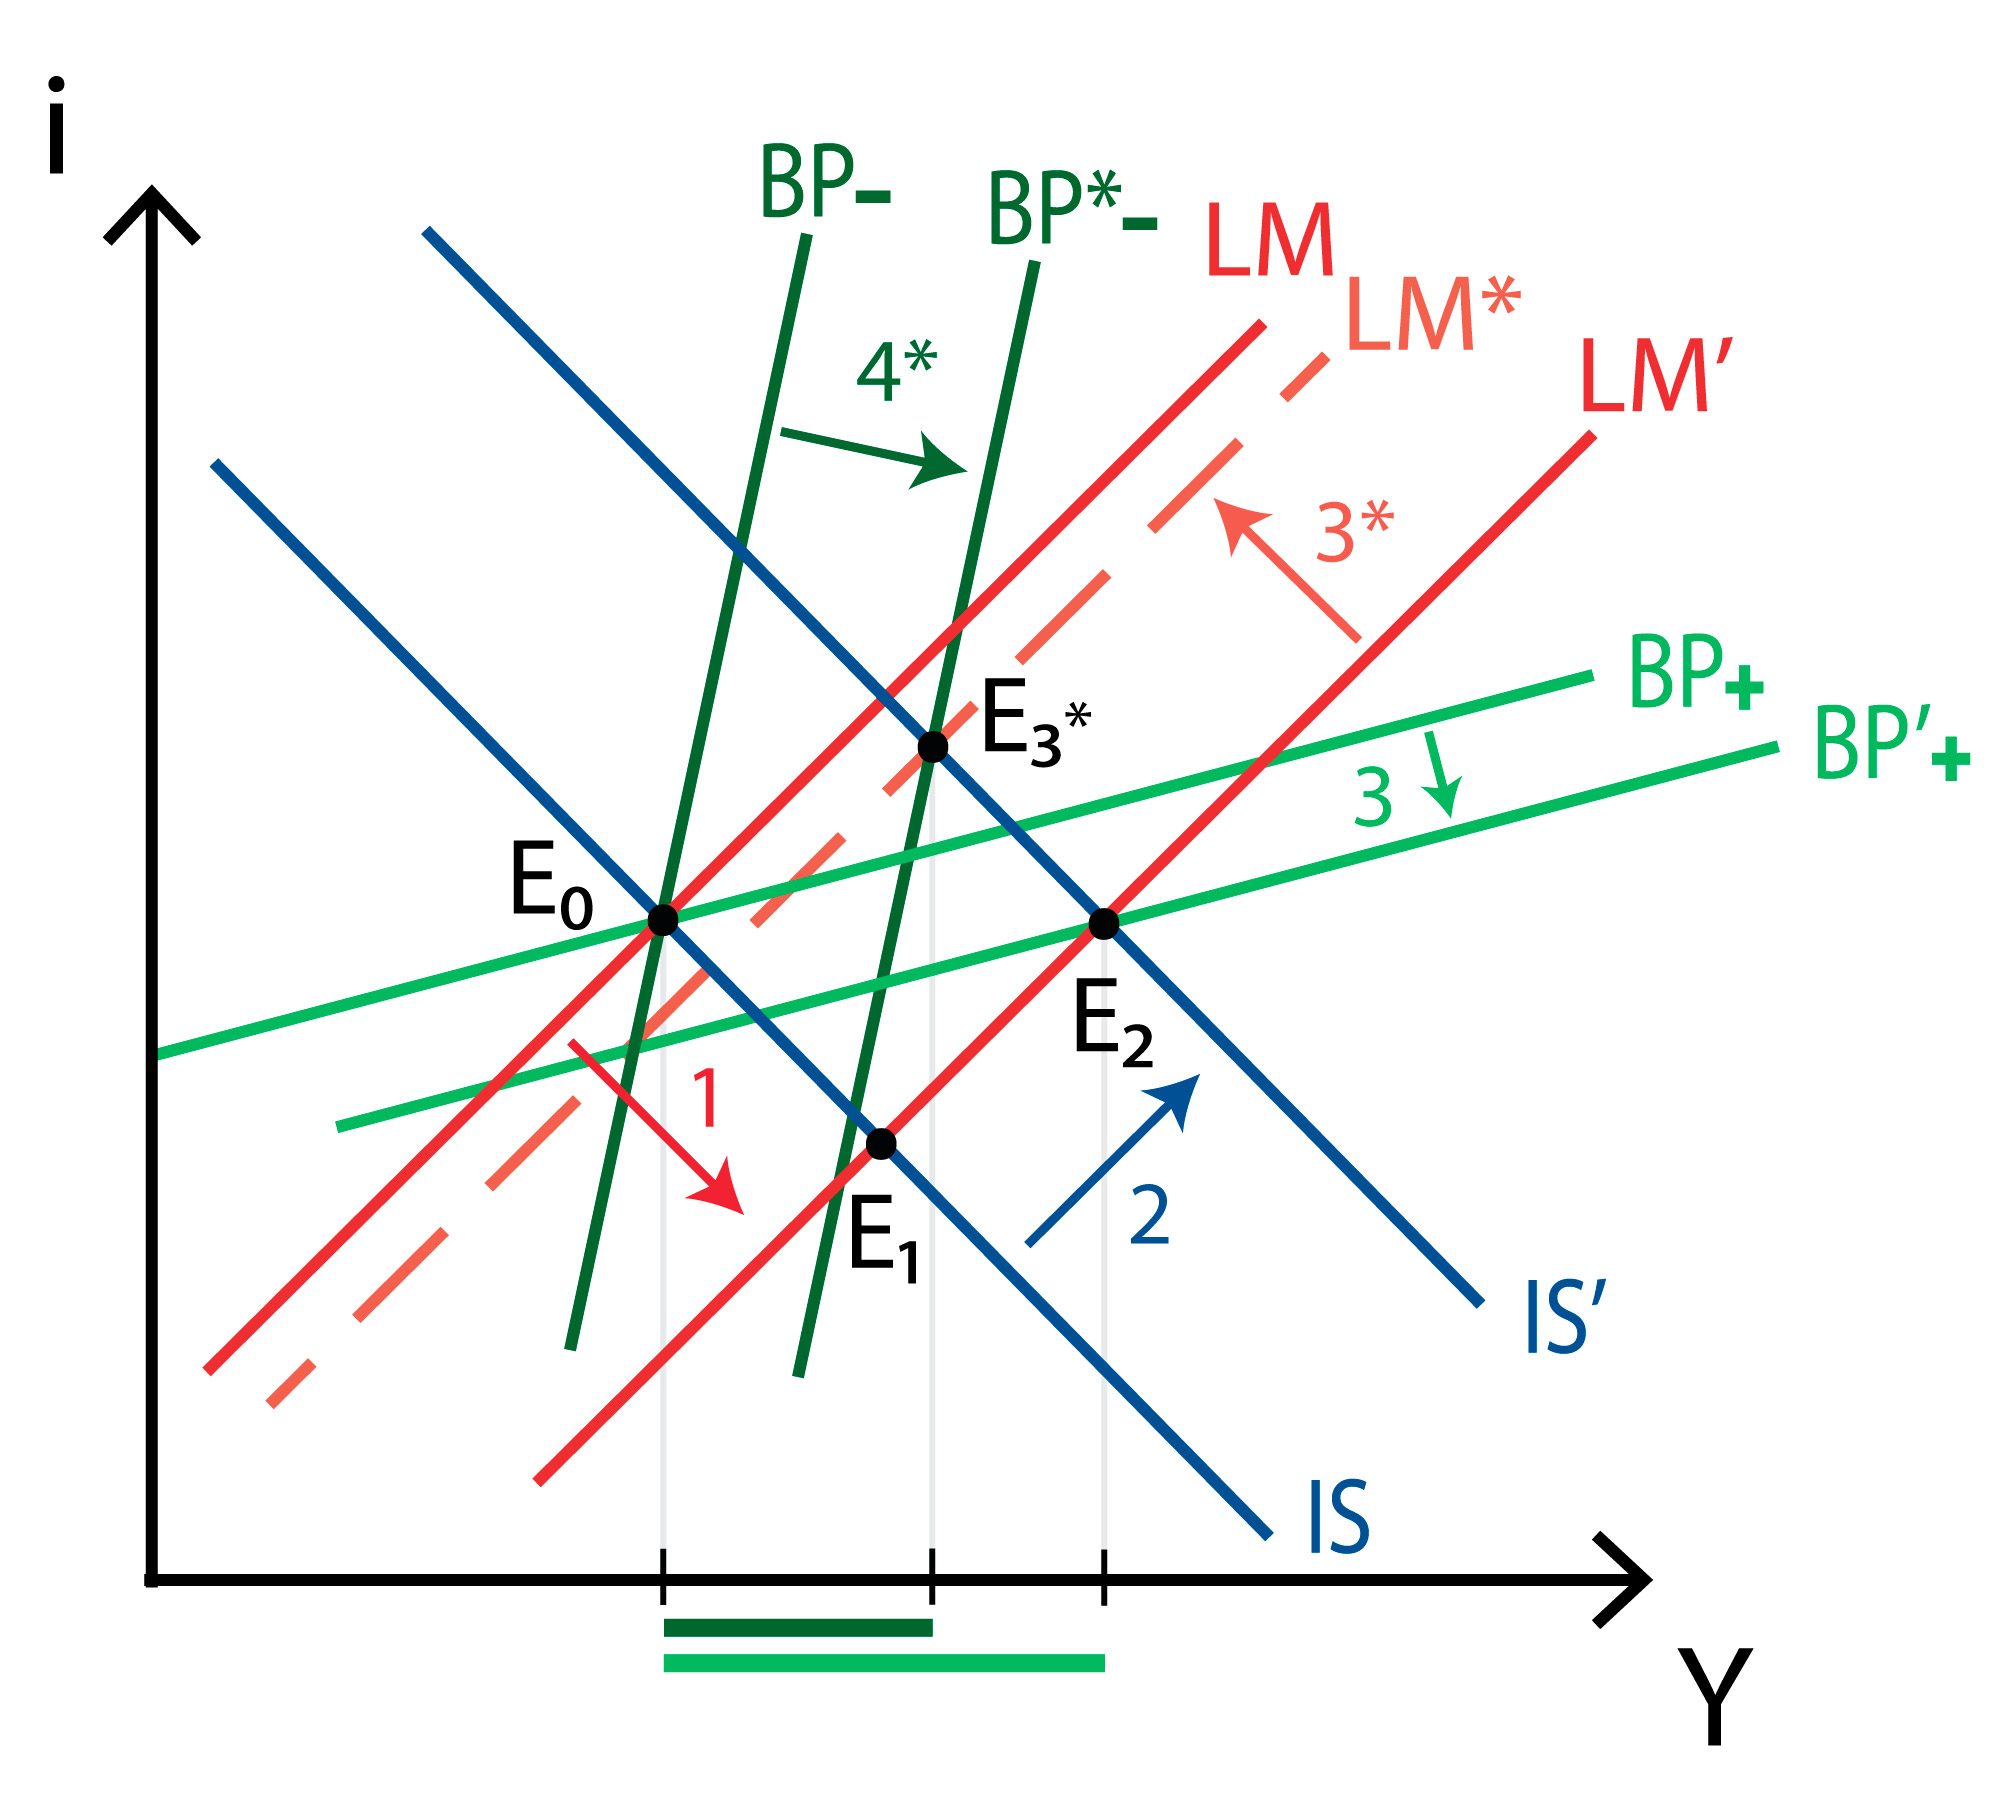 IS-LM-BP model - Imperfect capital mobility - Flexible exchange - Monetary policy